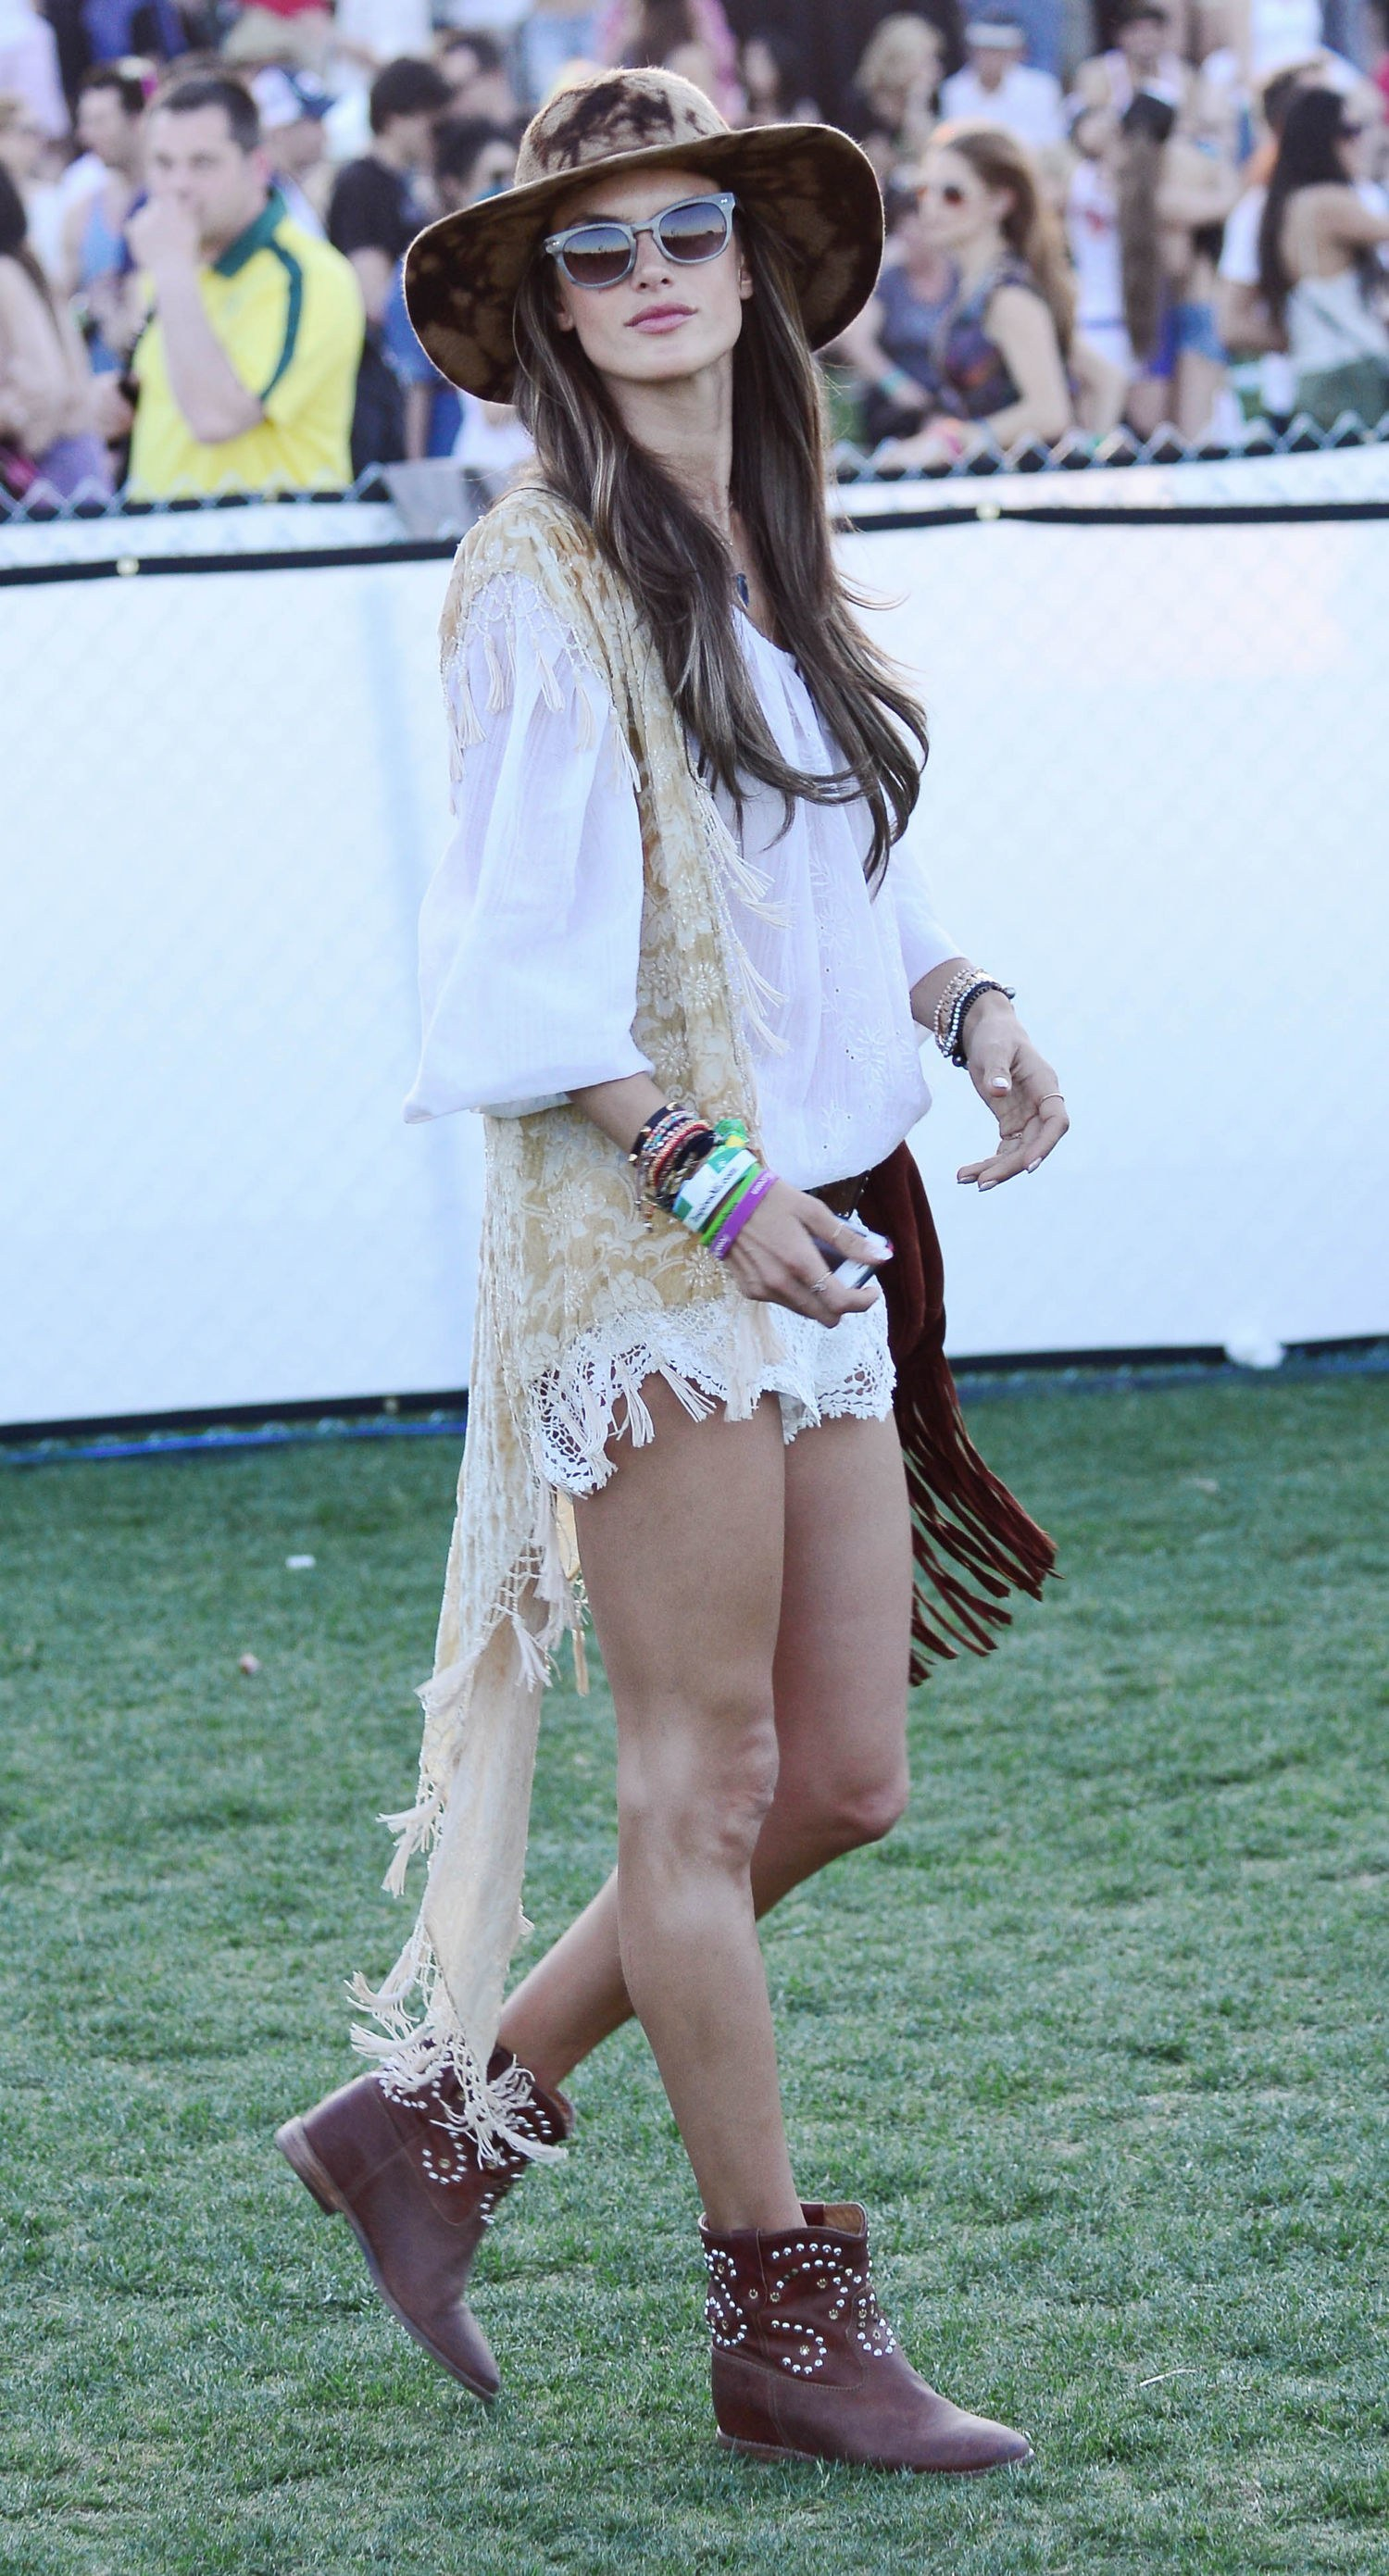 what to wear at a concert: music-festival outfit ideas inspired by  celebrities fmlmqan